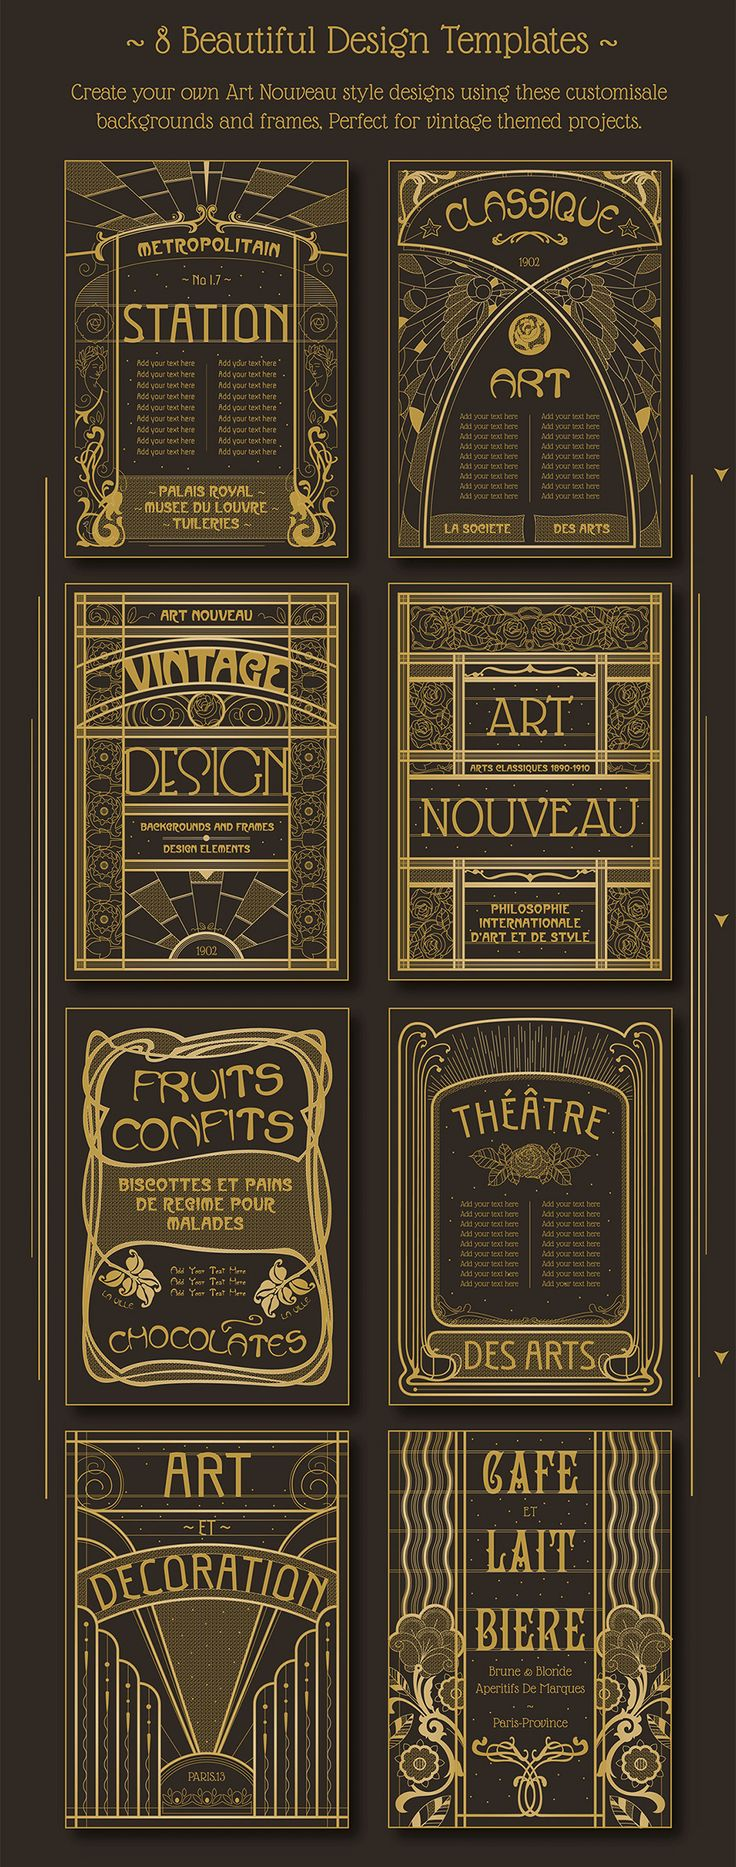 25 best ideas about art nouveau on pinterest art nouveau design art nouveau illustration and - Art nouveau art deco ...